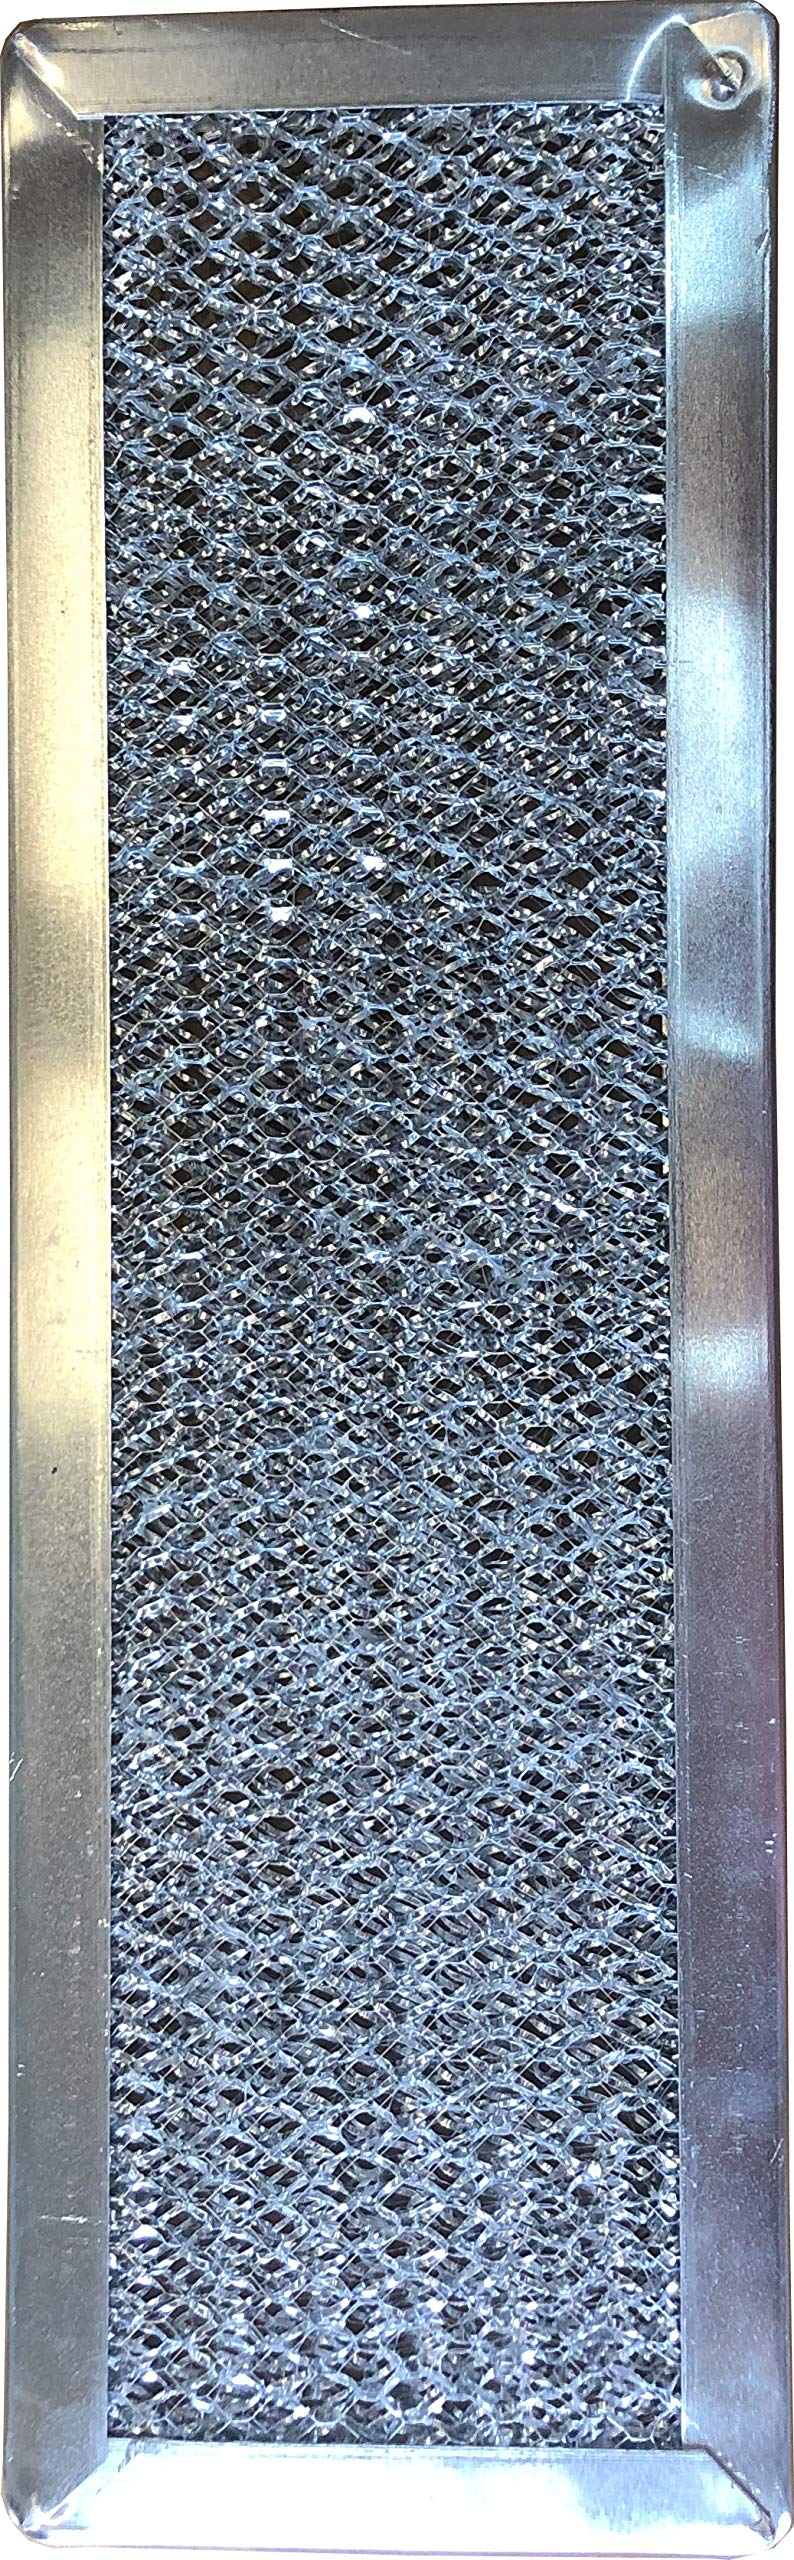 Replacement Aluminum Range Filter Compatible With Broan 97009786B, Creda 97009786B, LG / Zenith 9700